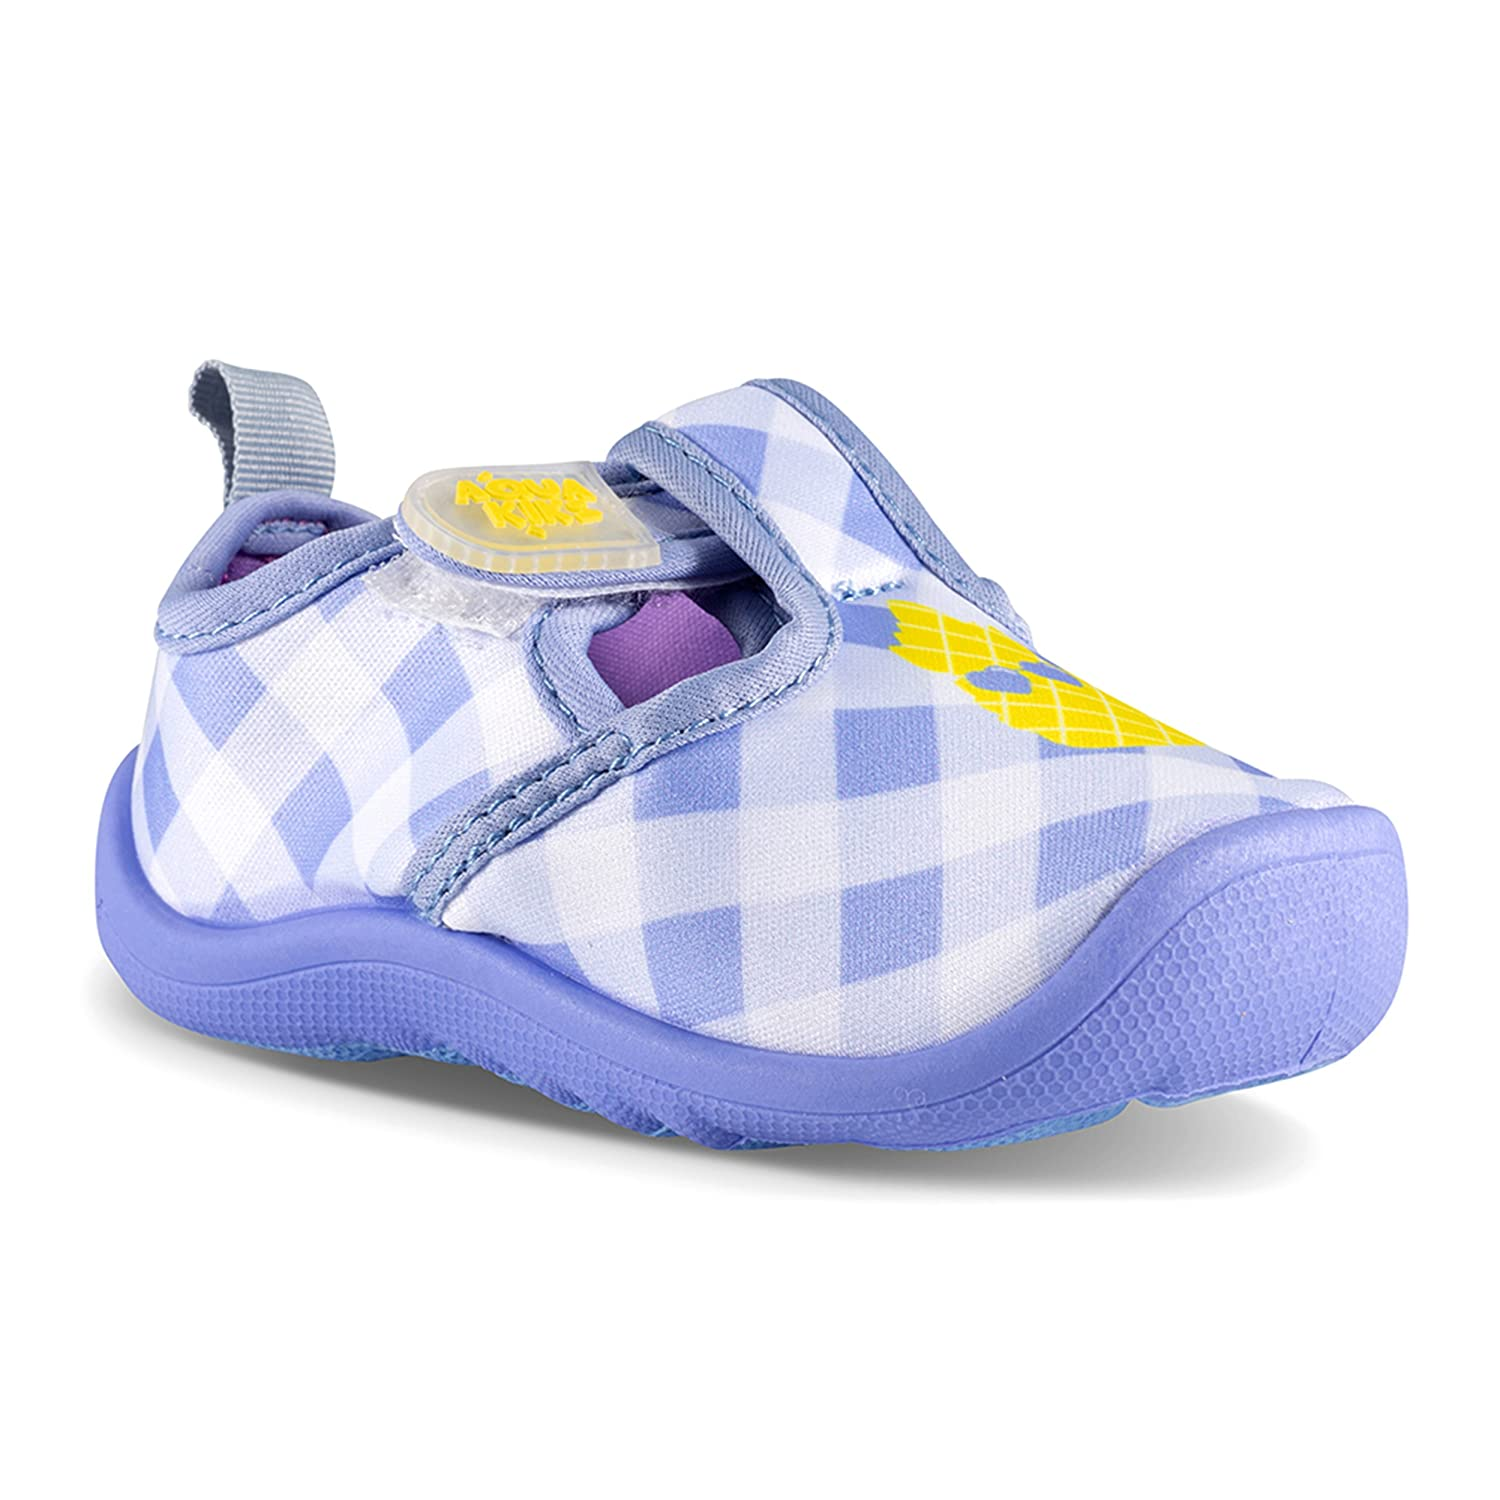 Aquakiks Water Shoes for Kids and Toddlers Aqua Shoes for Boys and Girls